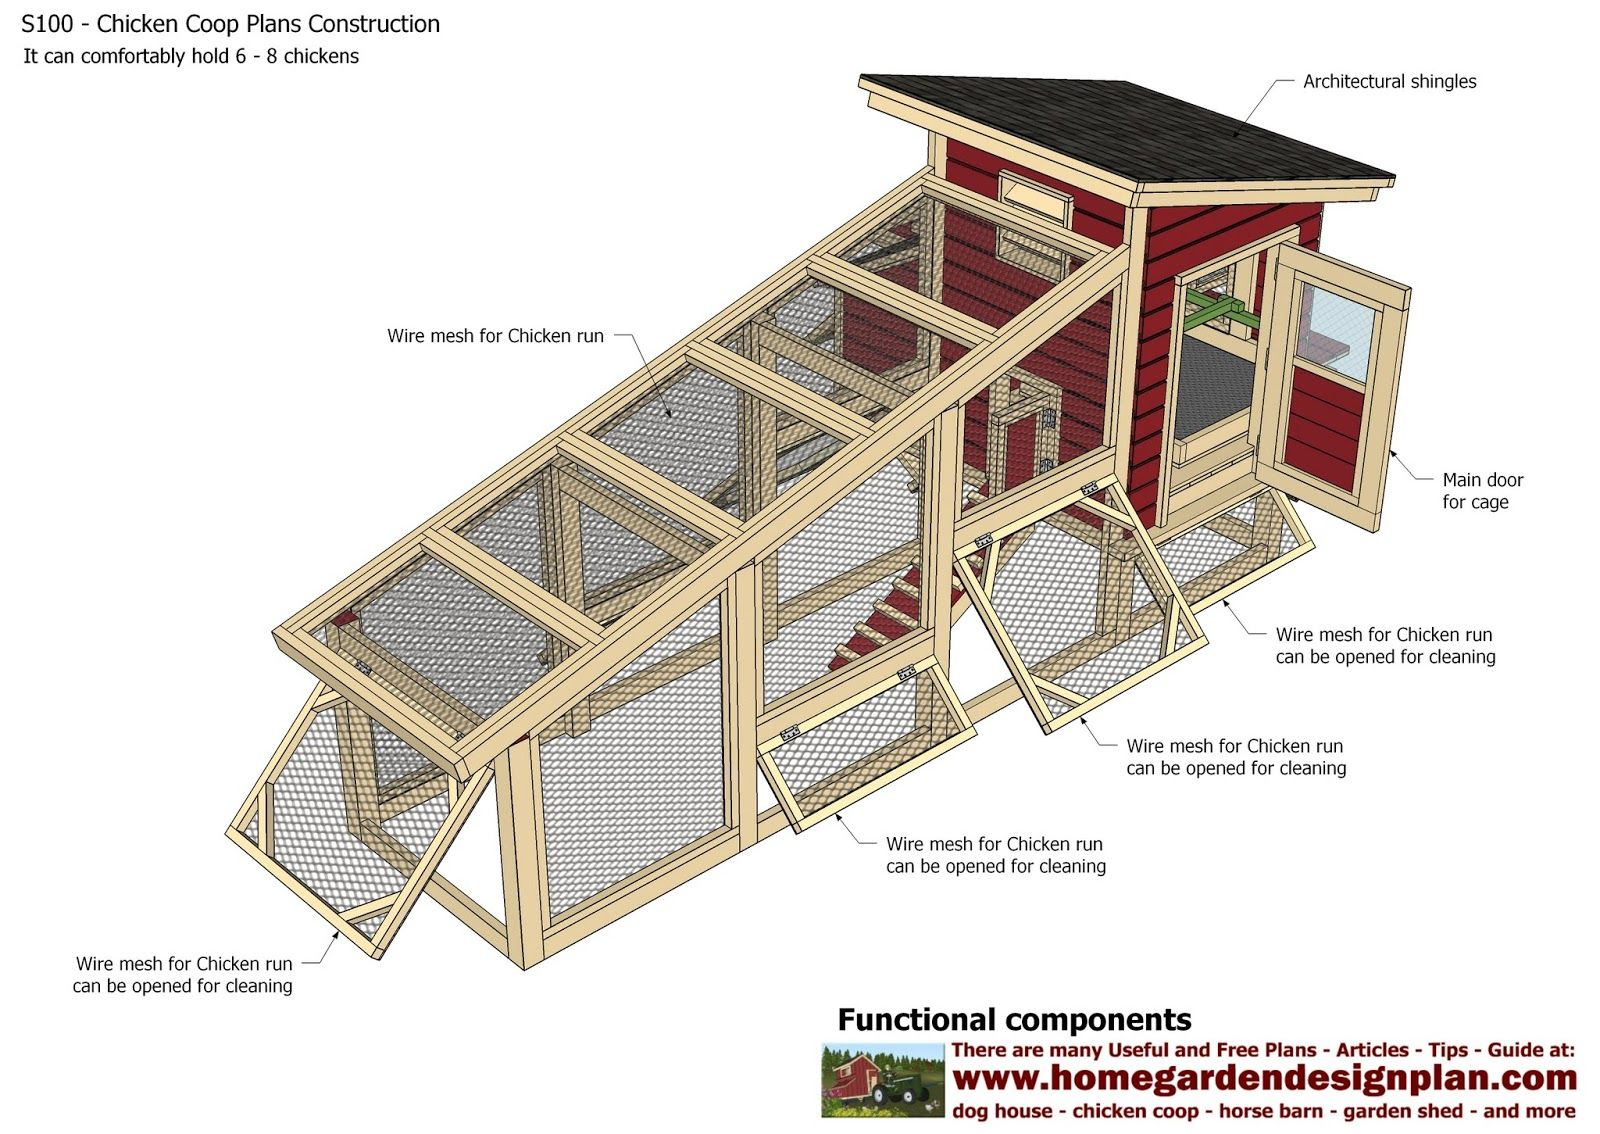 Home garden plans s100 chicken coop plans construction for Free chicken coop designs plans